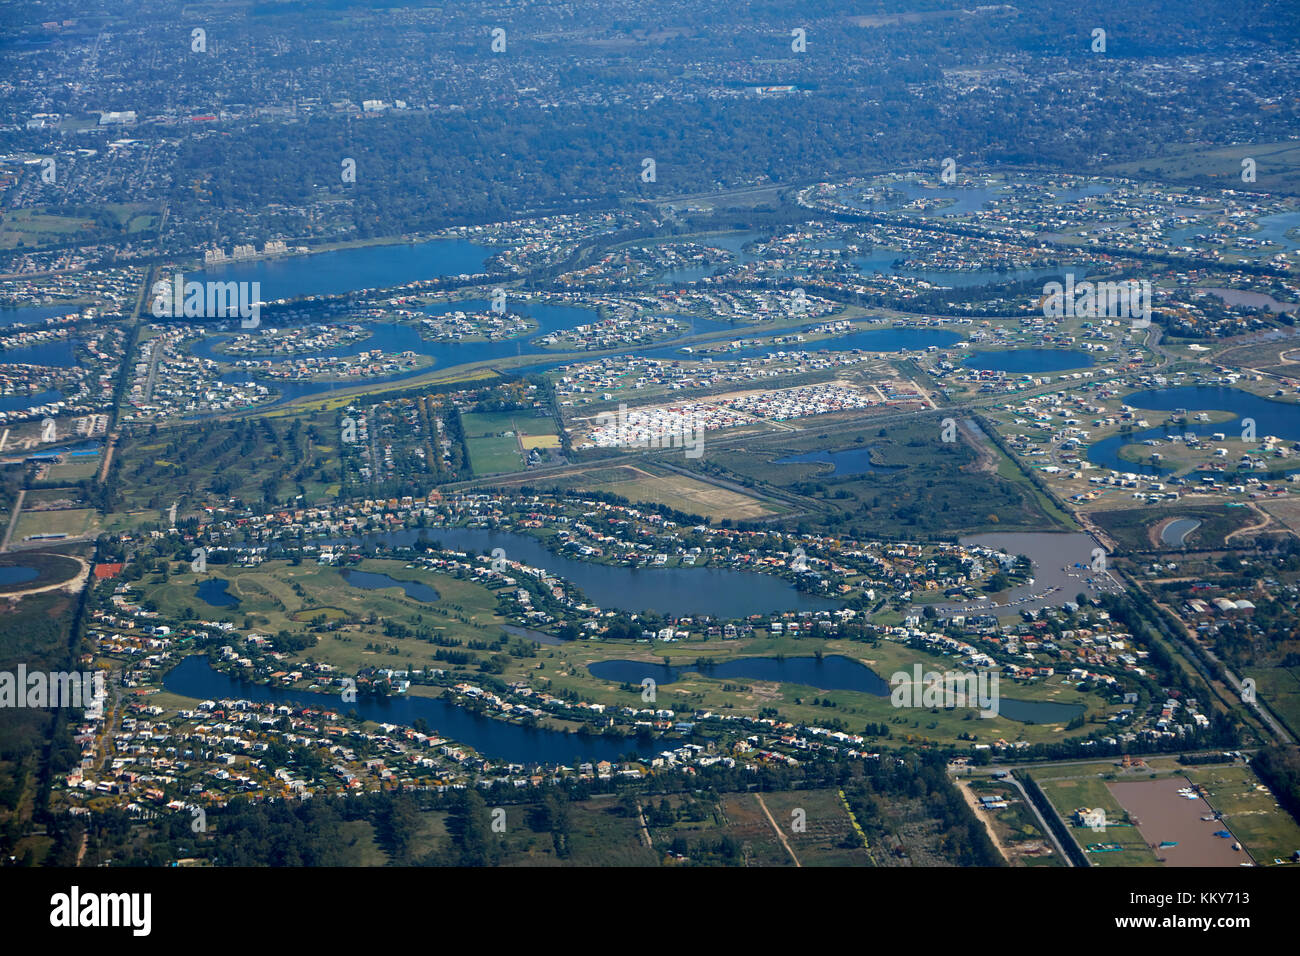 Waterways and houses, Dique Lujan, northern Buenos Aires, Argentina, South America - aerial - Stock Image